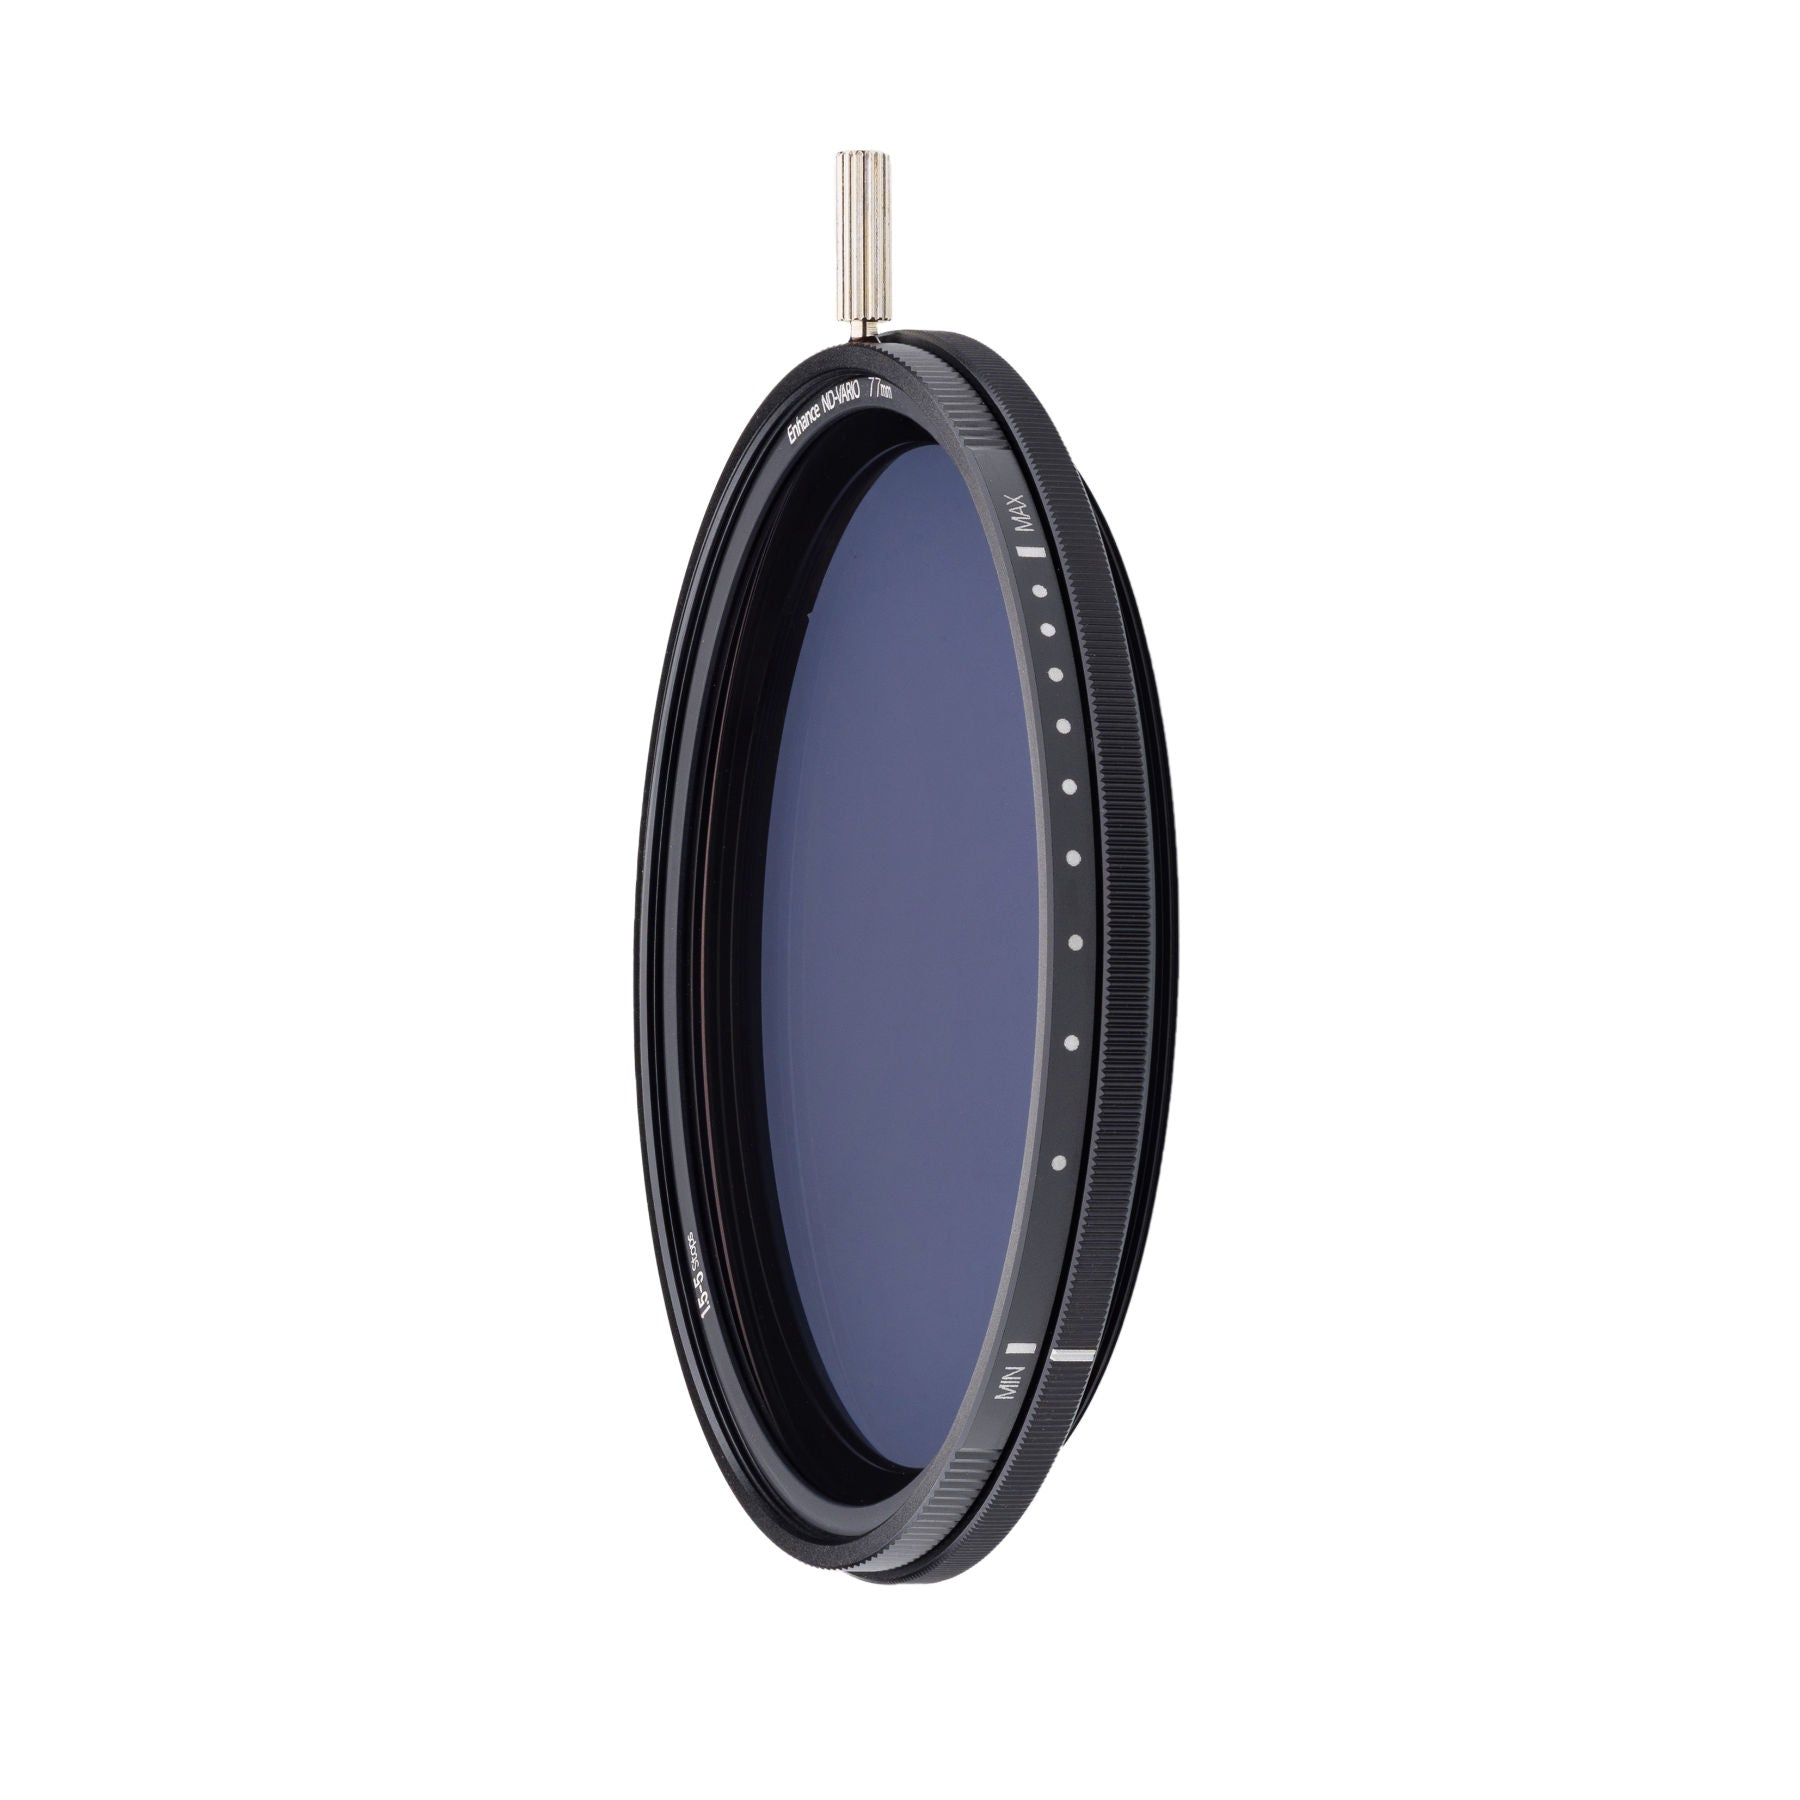 NiSi 77mm ND-Vario Variable Neutral Density 0.45 to 1.5 Filter (1.5 to 5 Stops)